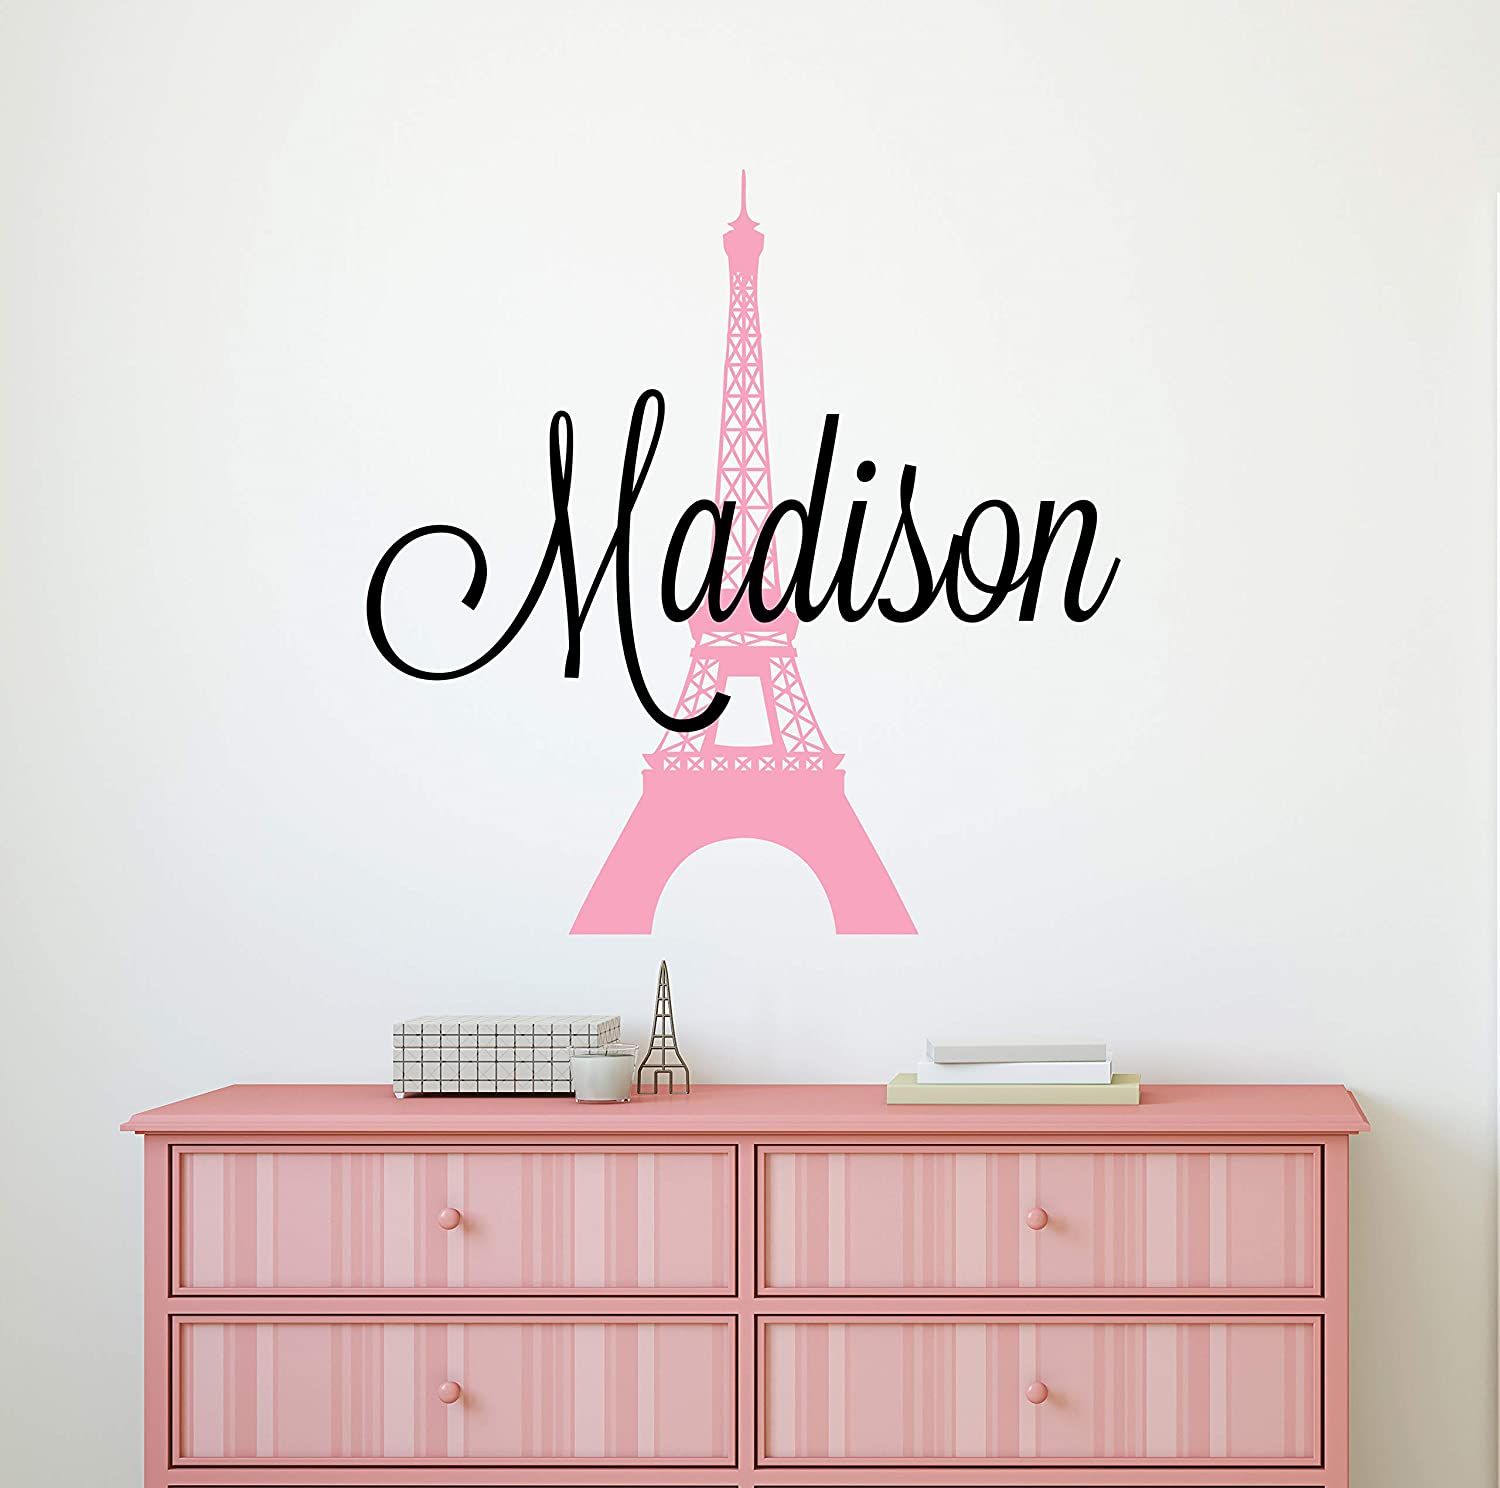 "Custom Name Paris Wall Decal - Girls Personalized Name Eiffel Tower Wall Decor - Girls Name Sign Stencil Monogram Bedroom Room Wall Art Mural Vinyl Sticker (34""W x 34""H)"